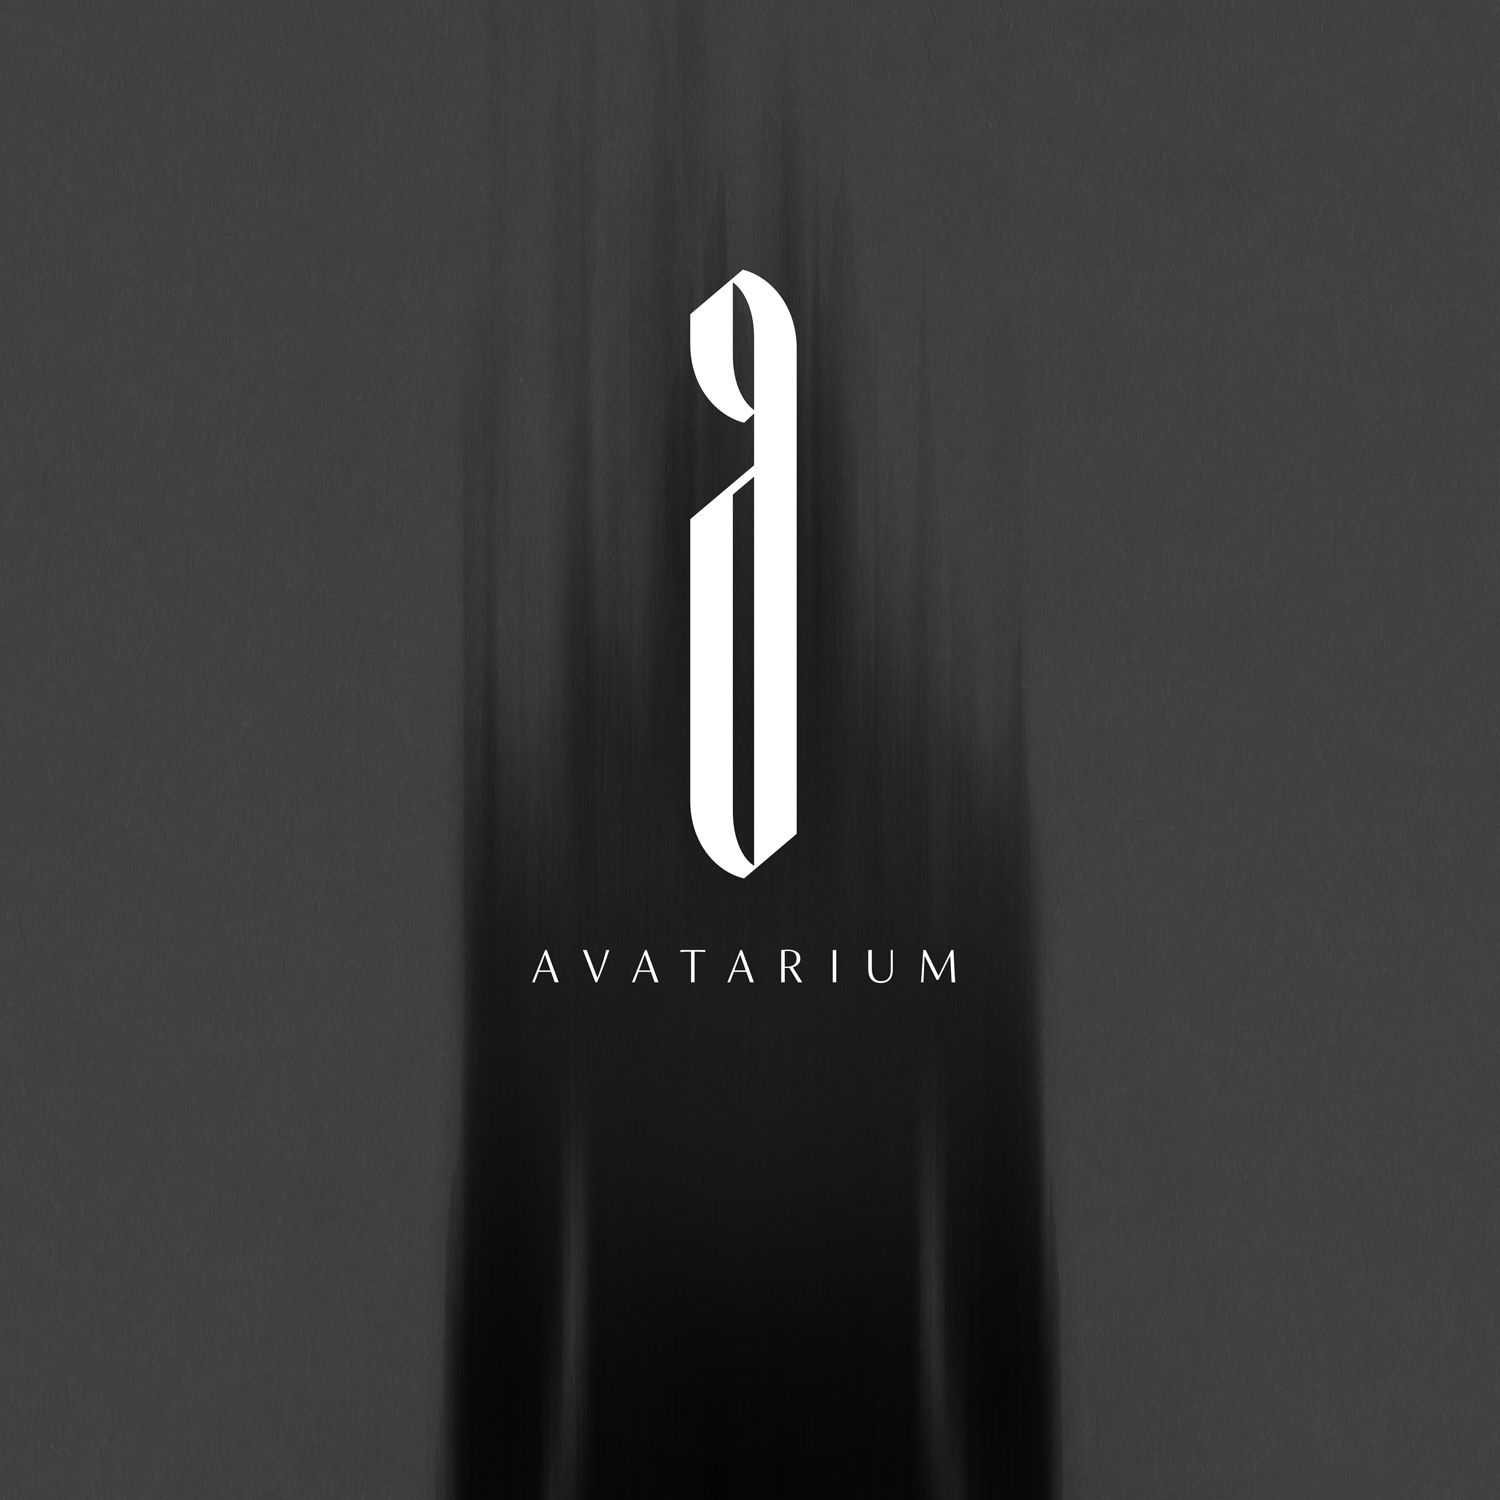 Avatarium – The Fire I long For